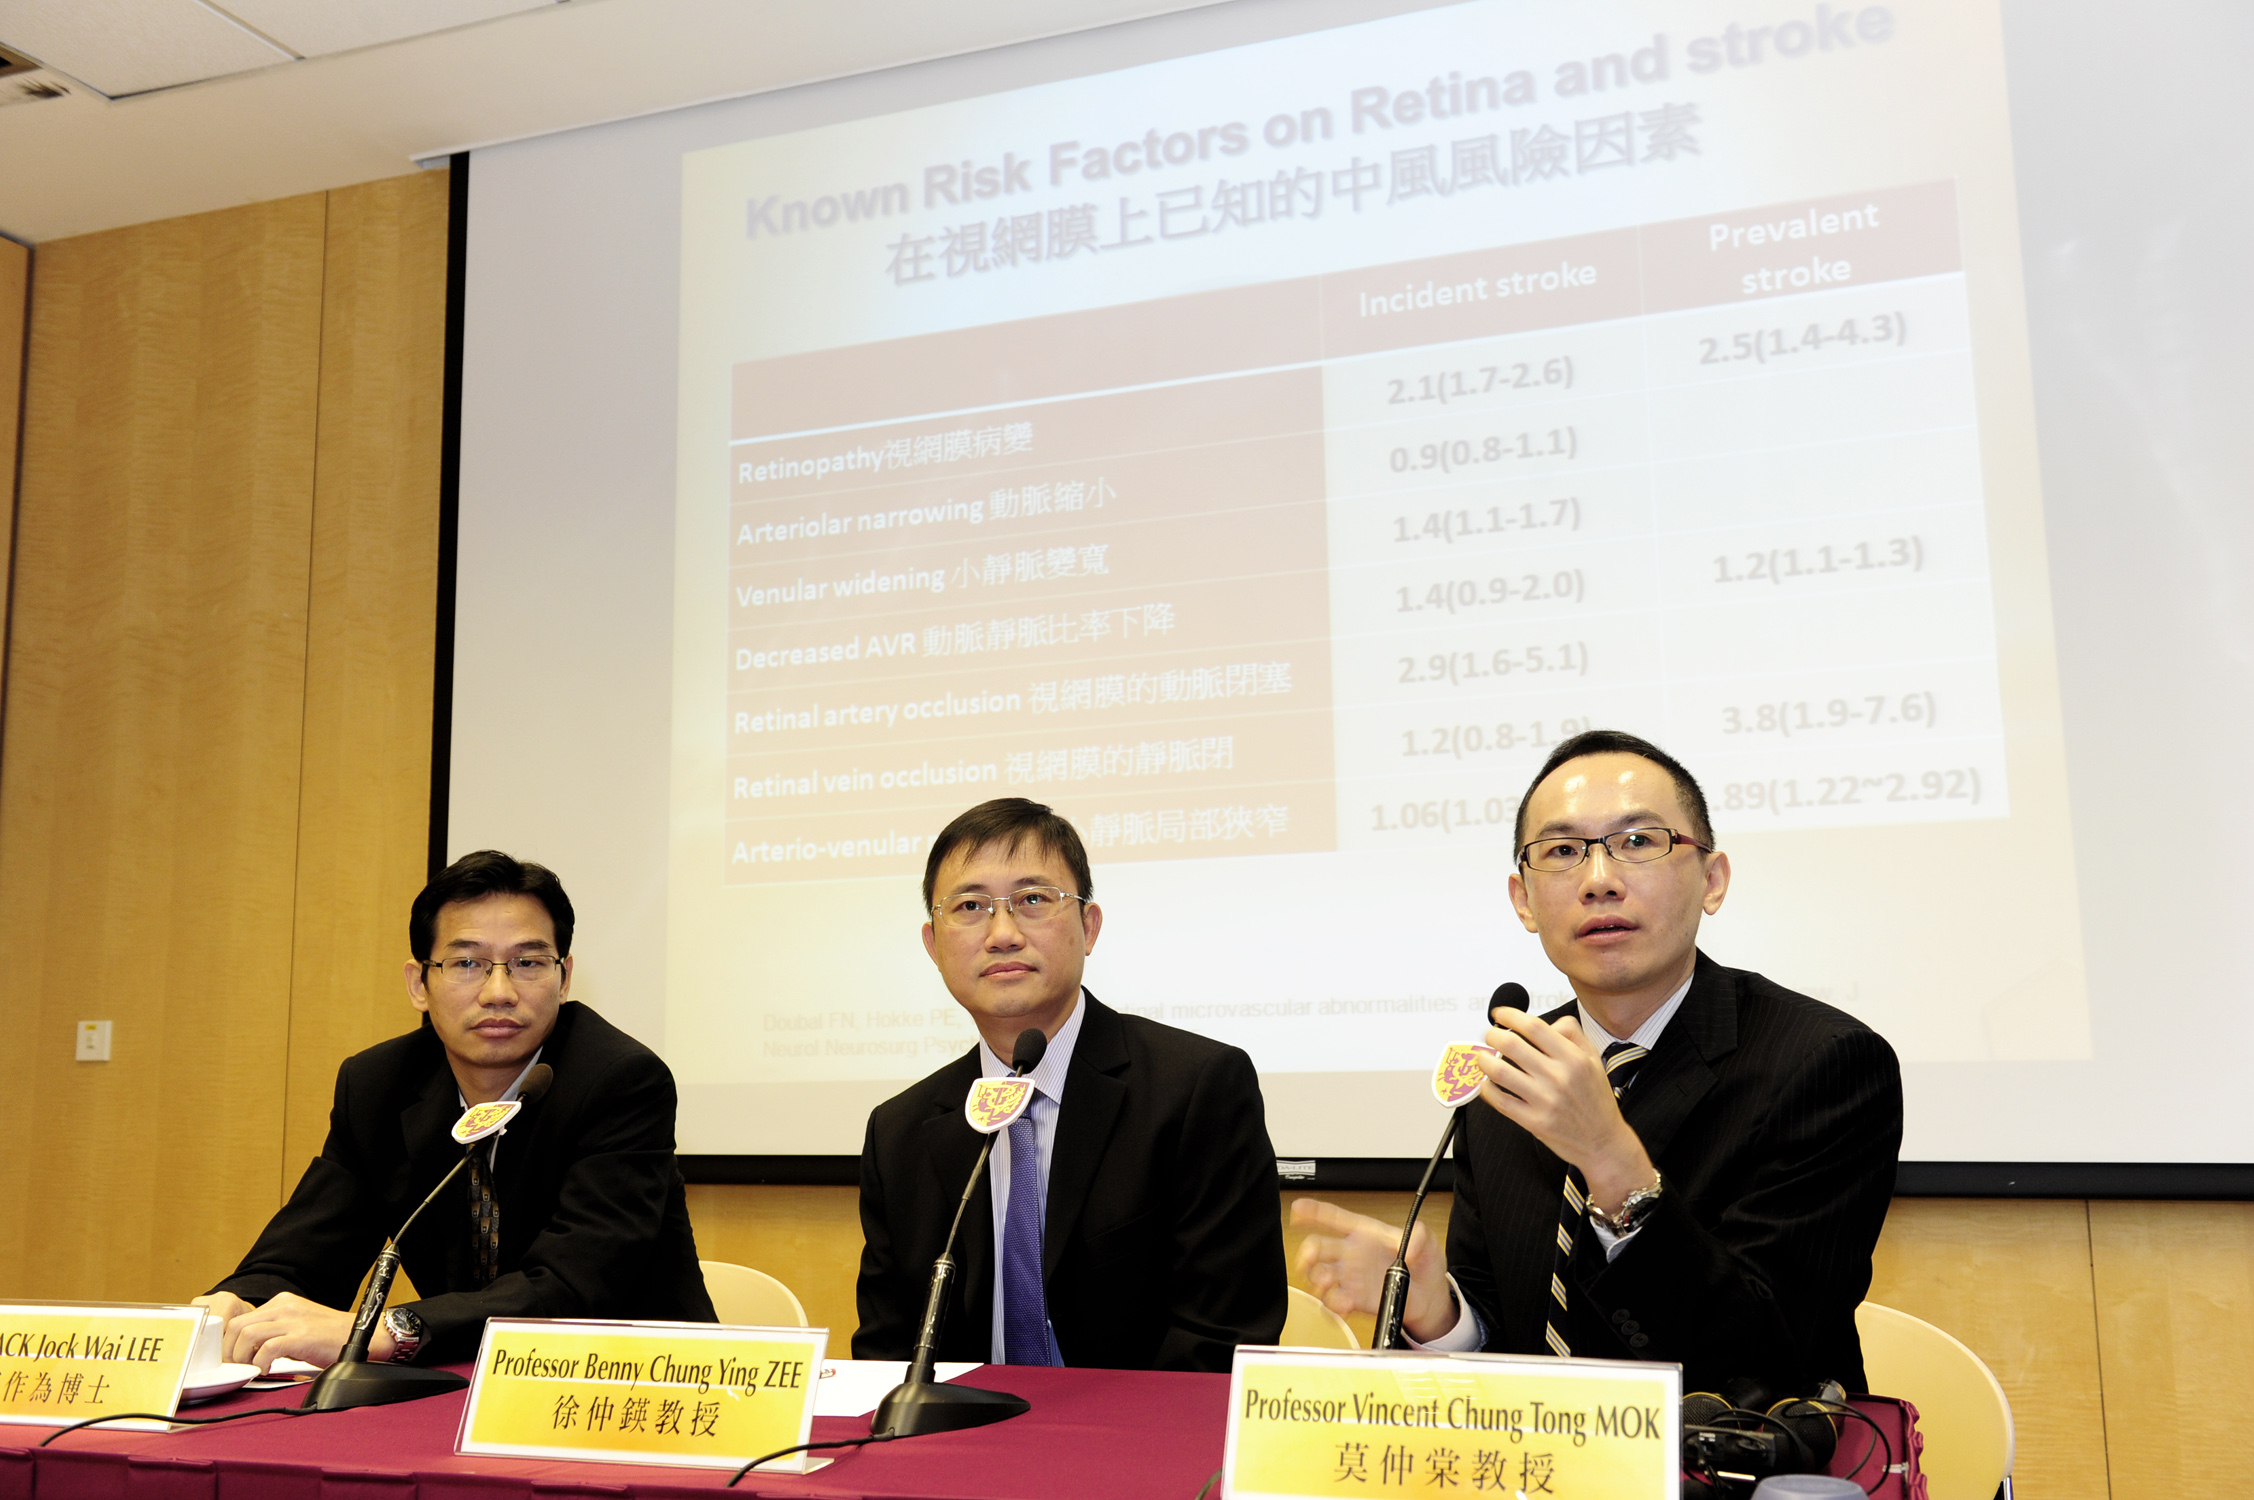 From left: Dr Jack Jock Wai LEE, Biostatistician, Division of Biostatistics, The Jockey Club School of Public Health and Primary Care; Prof. Benny Chung Ying ZEE, Head of Division, Division of Biostatistics, The Jockey Club School of Public Health and Primary Care; and Prof. Vincent Chung Tong MOK, Professor, Division of Neurology, Department of Medicine and Therapeutics at CUHK present their recent research on the use of an automatic retinal image analysis system would help diabetes patients to assess cerebral vessels condition and evaluate the risk of stroke